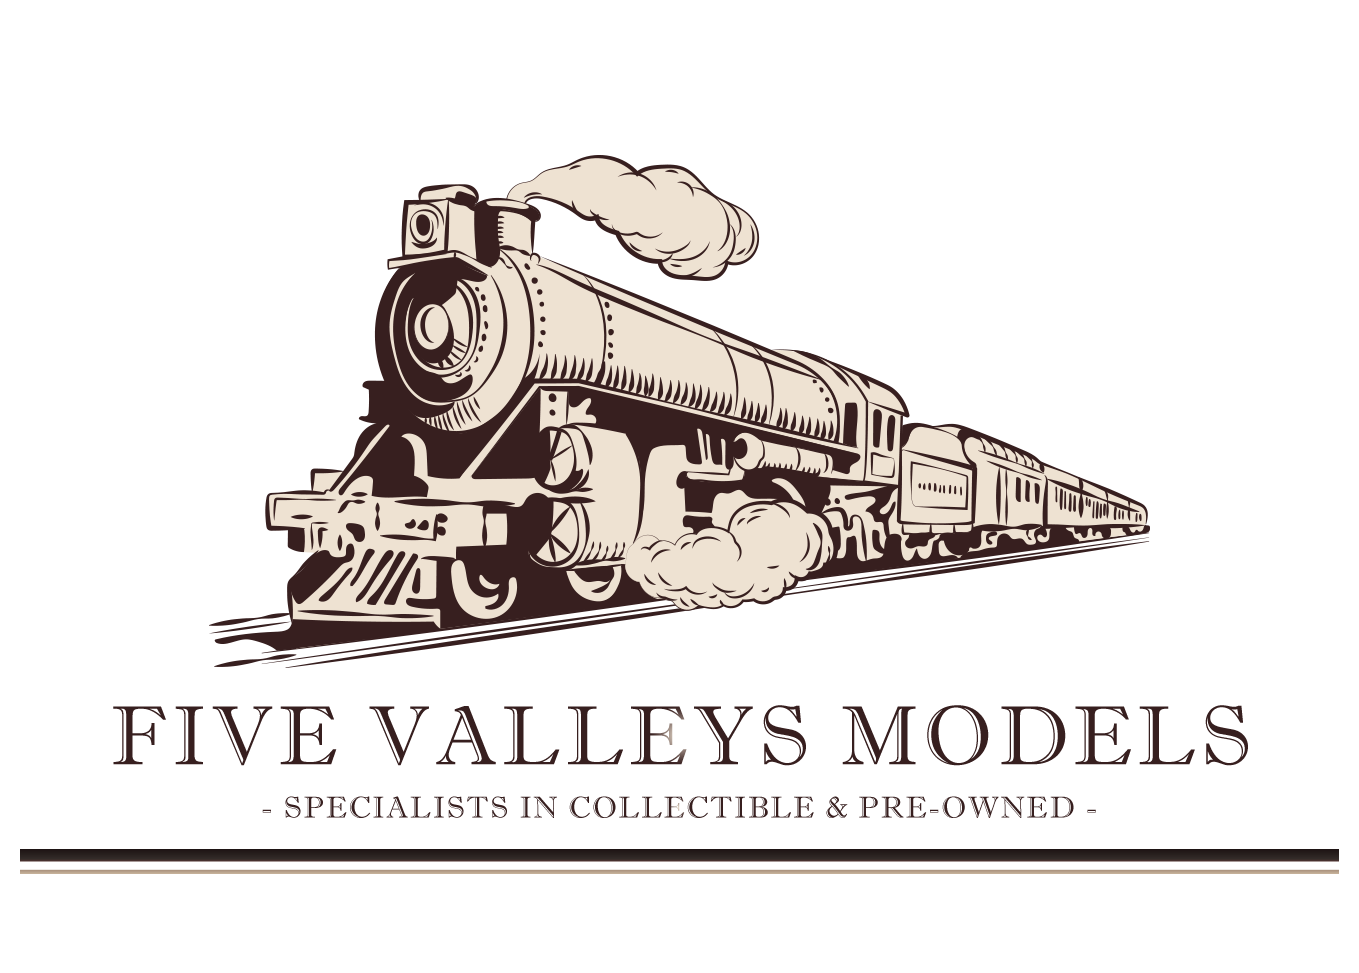 Five Valleys Models